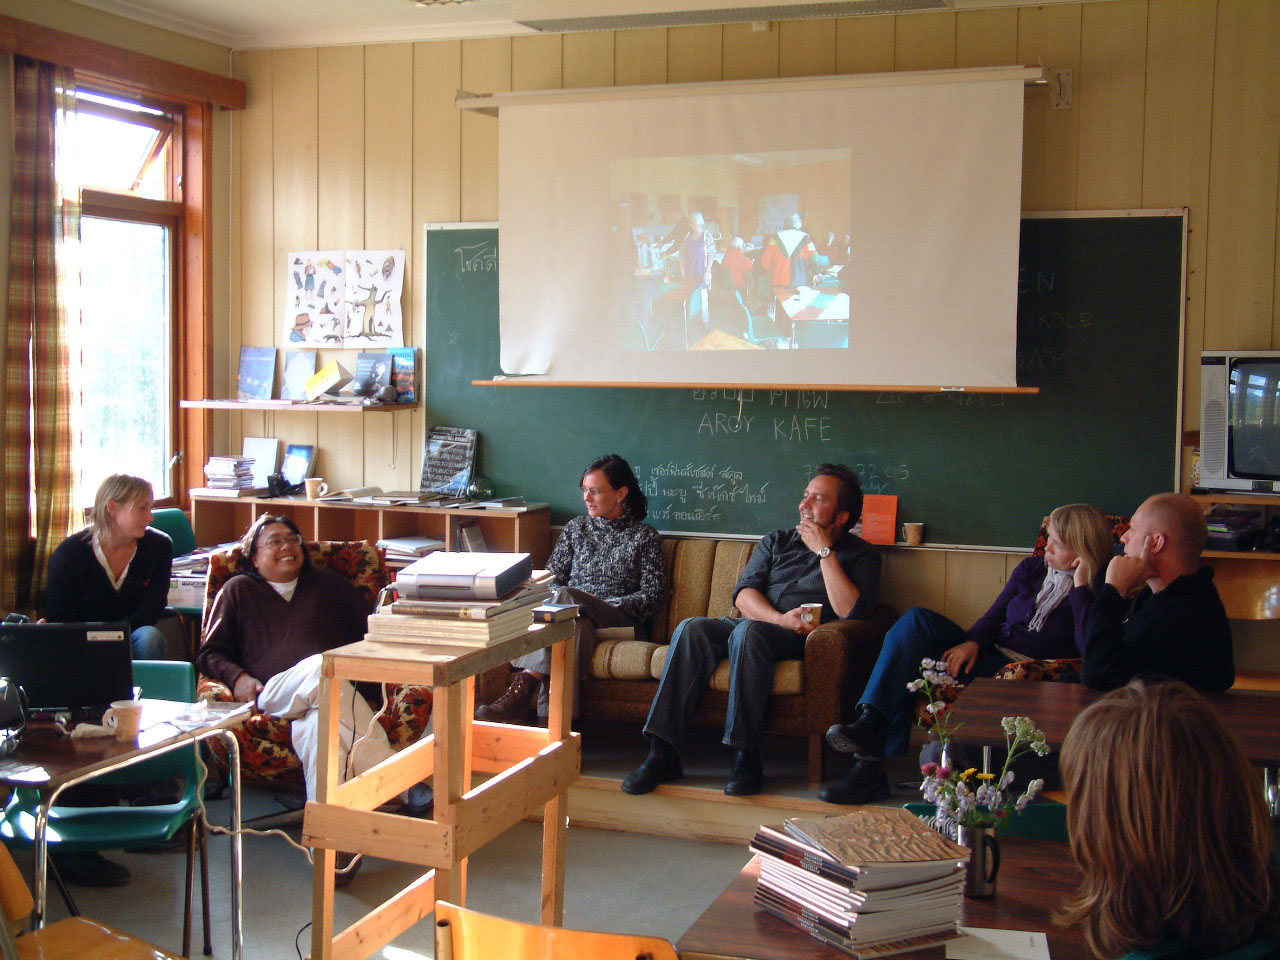 Discussion about Sørfinnset skole/the nord land (from left) Åse Løvgren, Rirkrit Tiravanija, Camilla Eeg, Geir Tore Holm, Søssa Jørgensen, Per-Gunnar Tverbakk